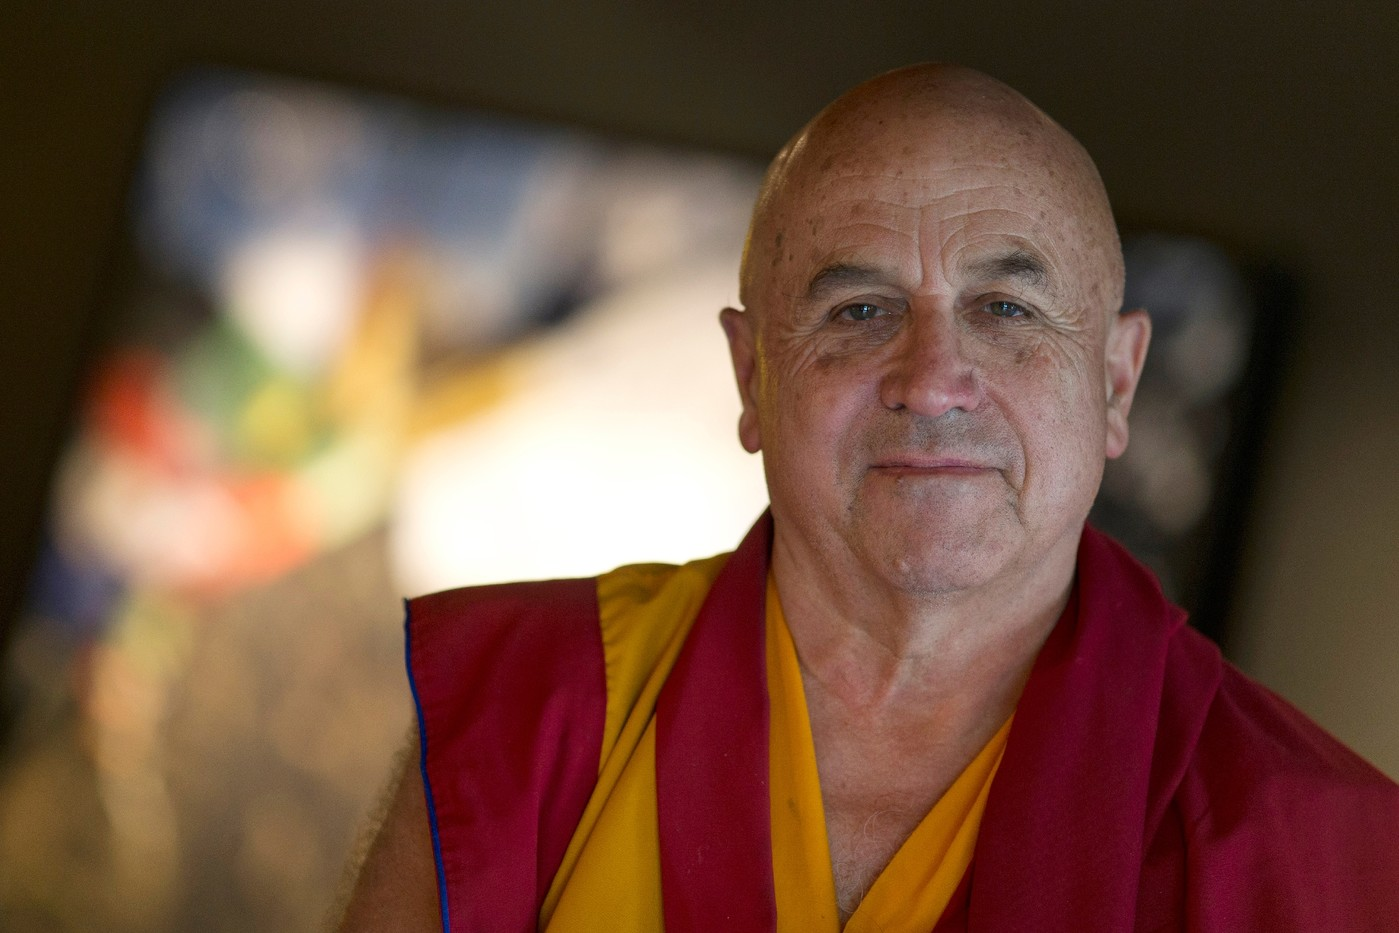 matthieu ricard 7 lessons , matthieu ricard leadership lesson,life lesson, life lesson facts, matthieu ricard ,happiest man on earth